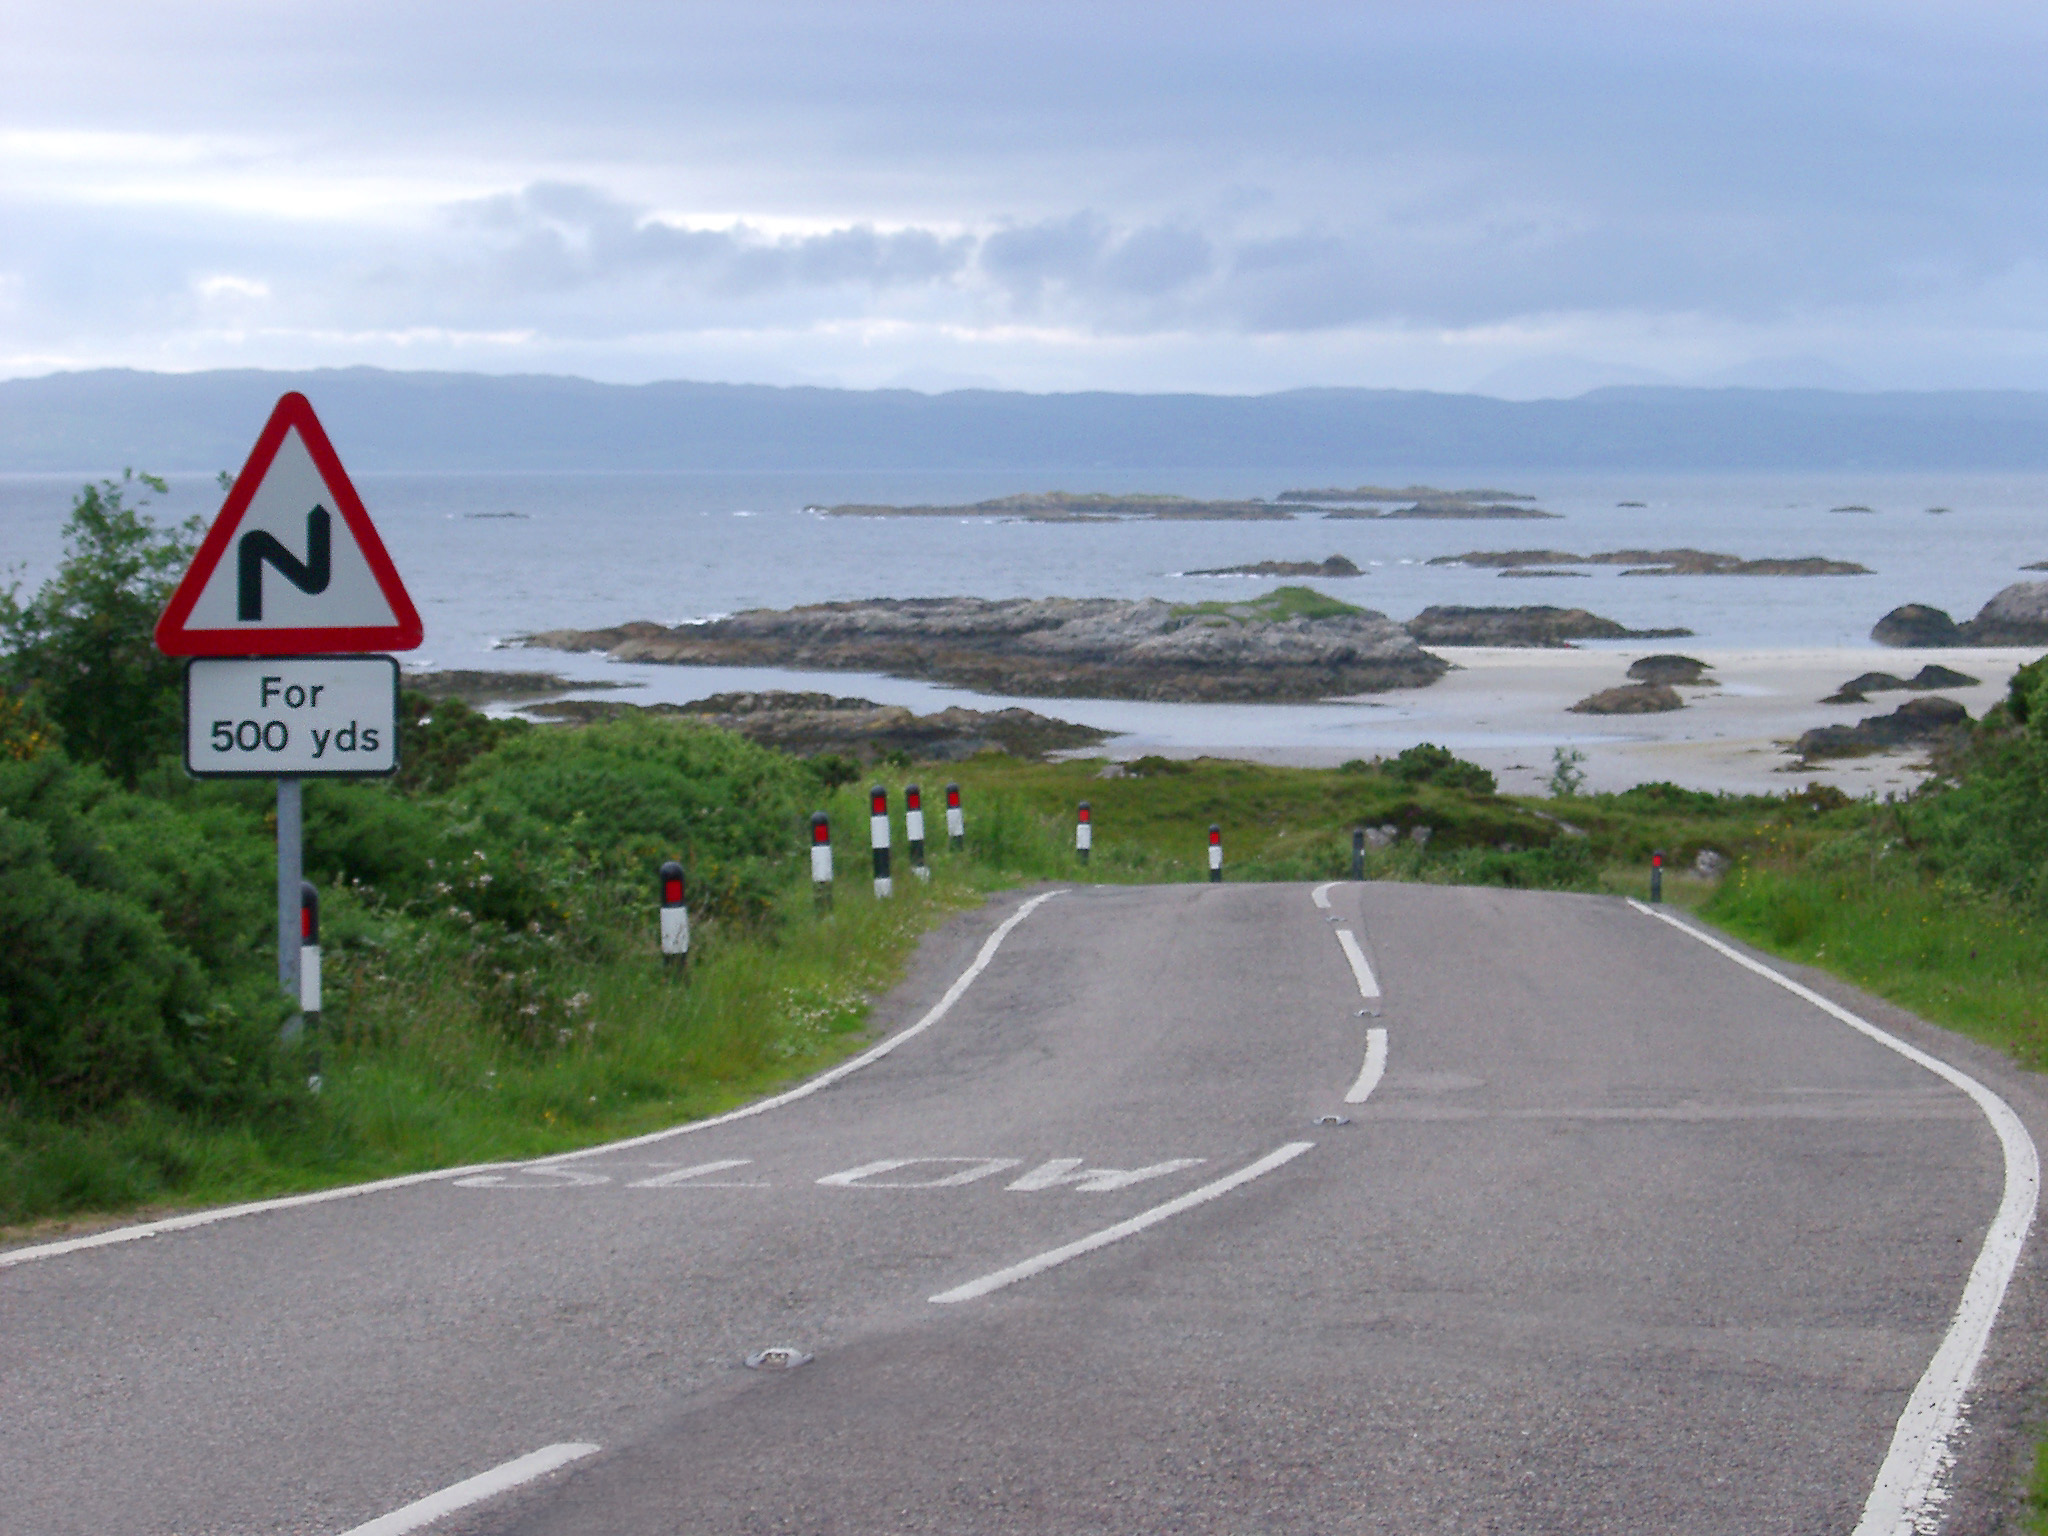 Scottish roads showing a curving bend with a hazard sign warning of bends for 500 yards along a section of the coastline